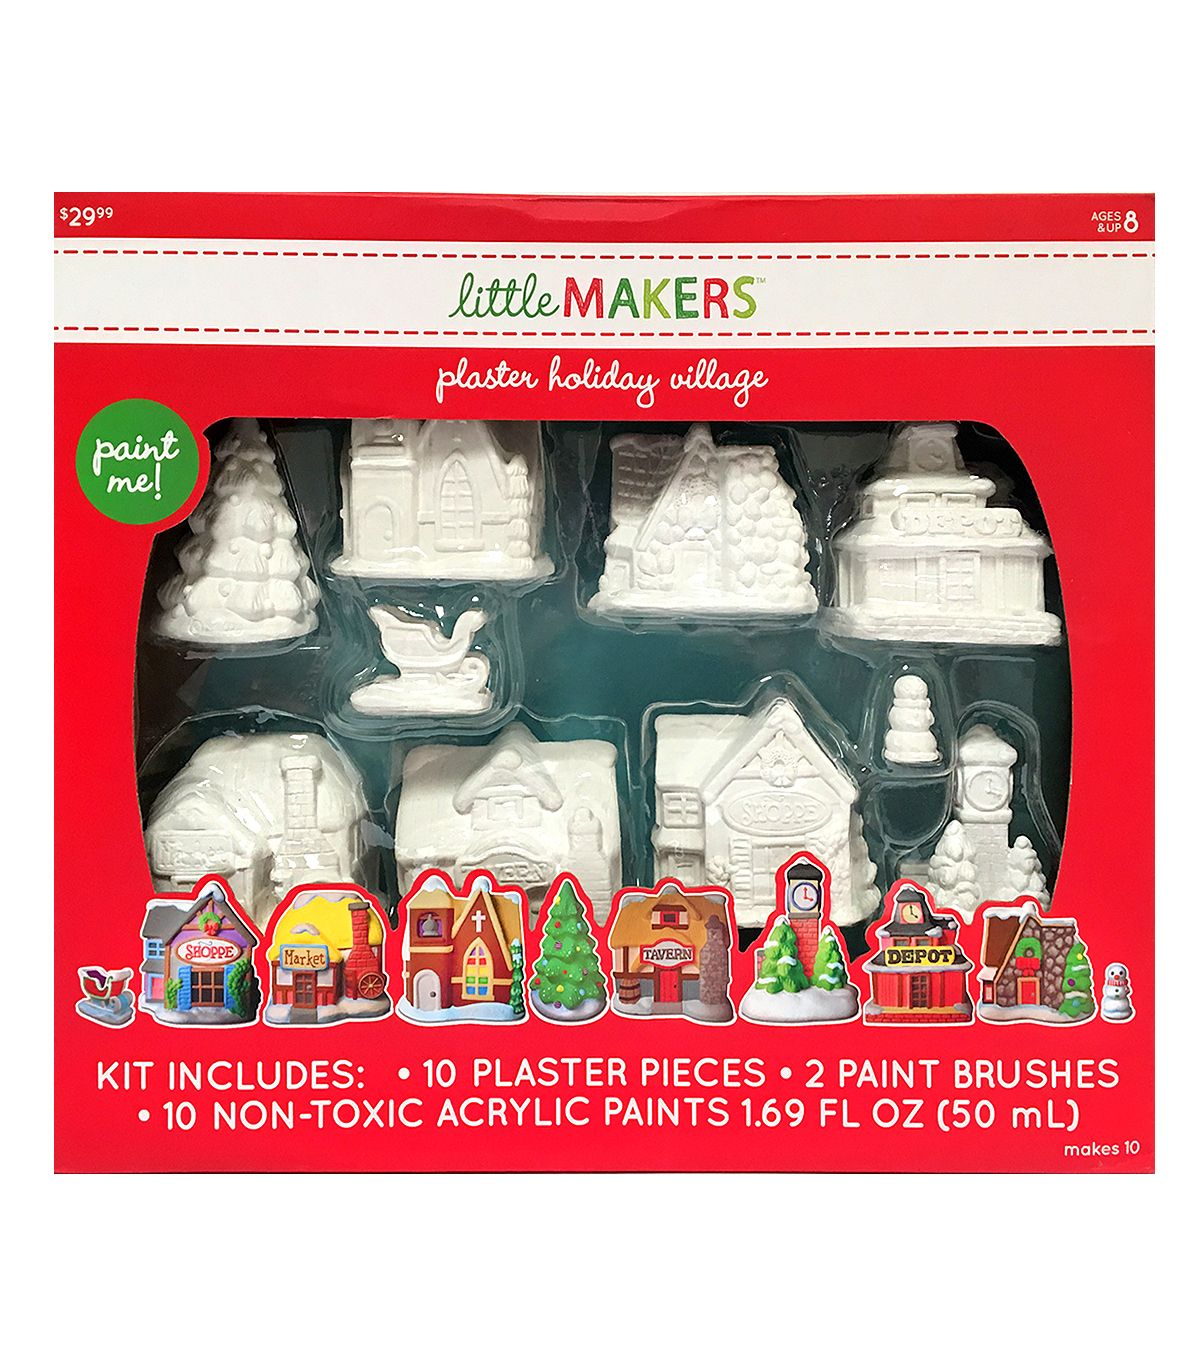 Little Maker U0027s Plaster Kit Holiday Village Diy Plaster Holiday Village A Christmas Story